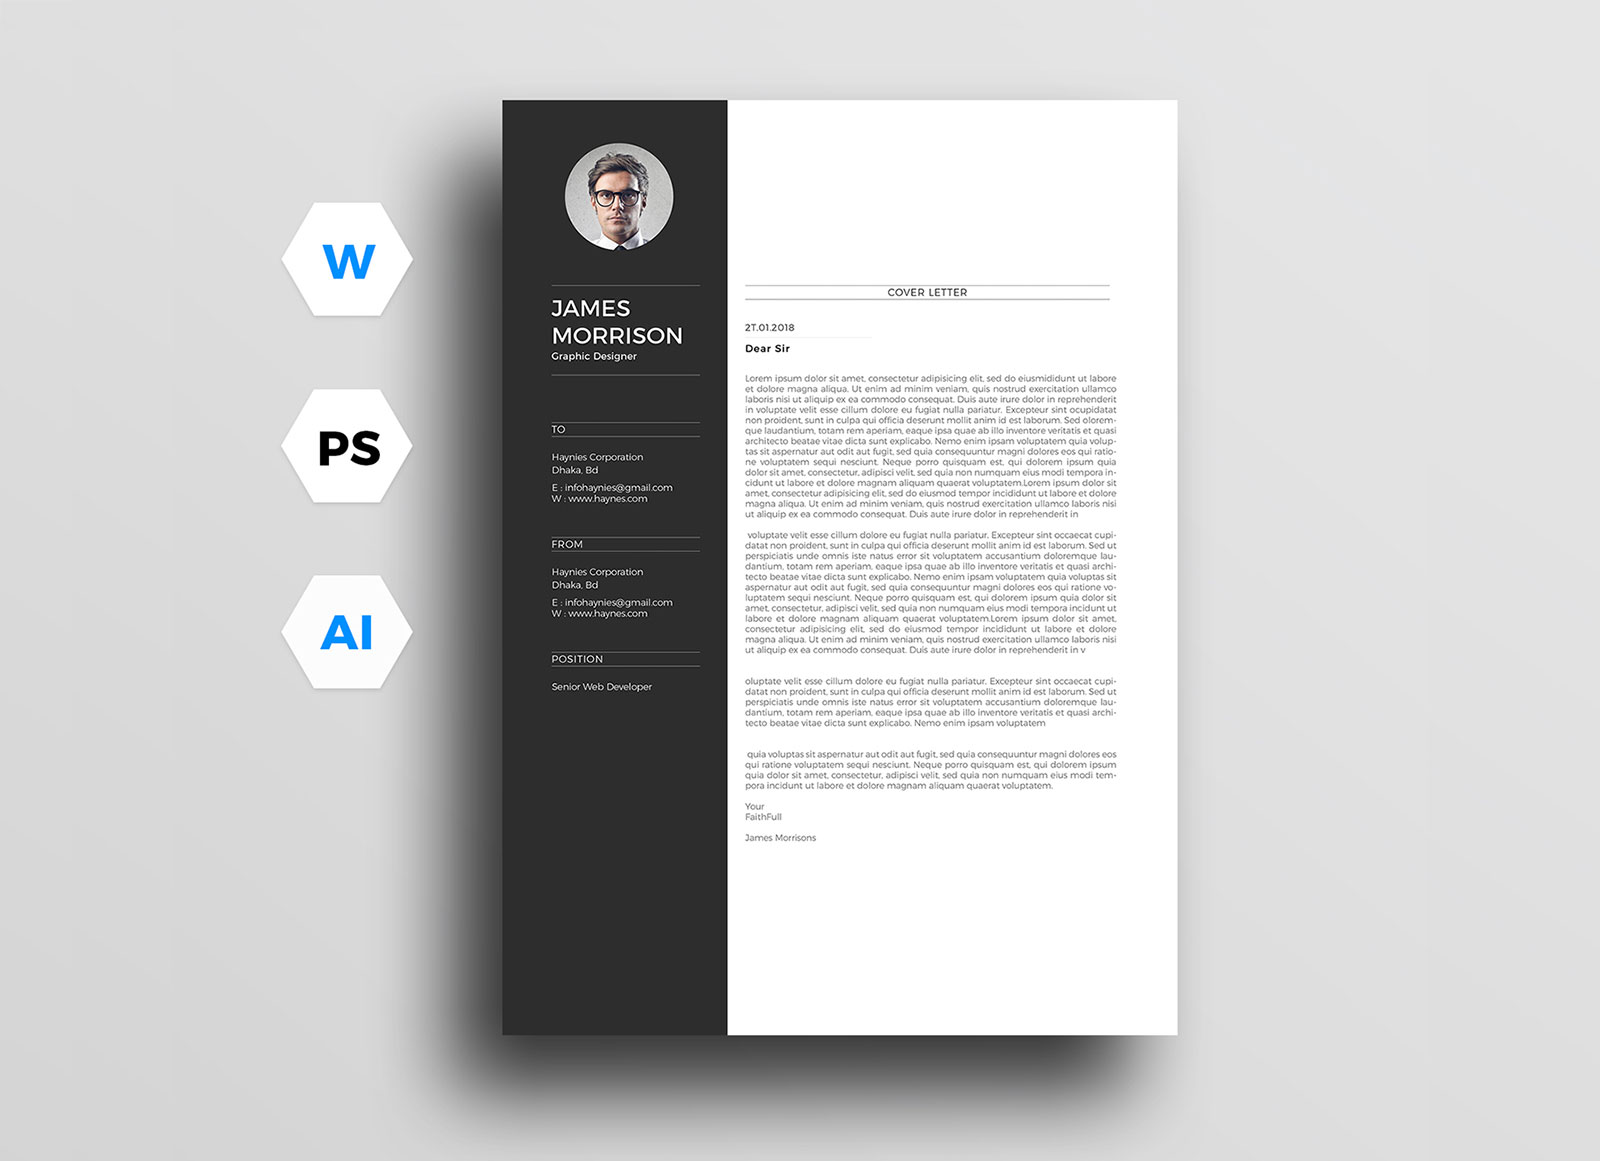 Free-Minimal-CV-Resume-Template-in-Word-Ai-&-PSD (3)